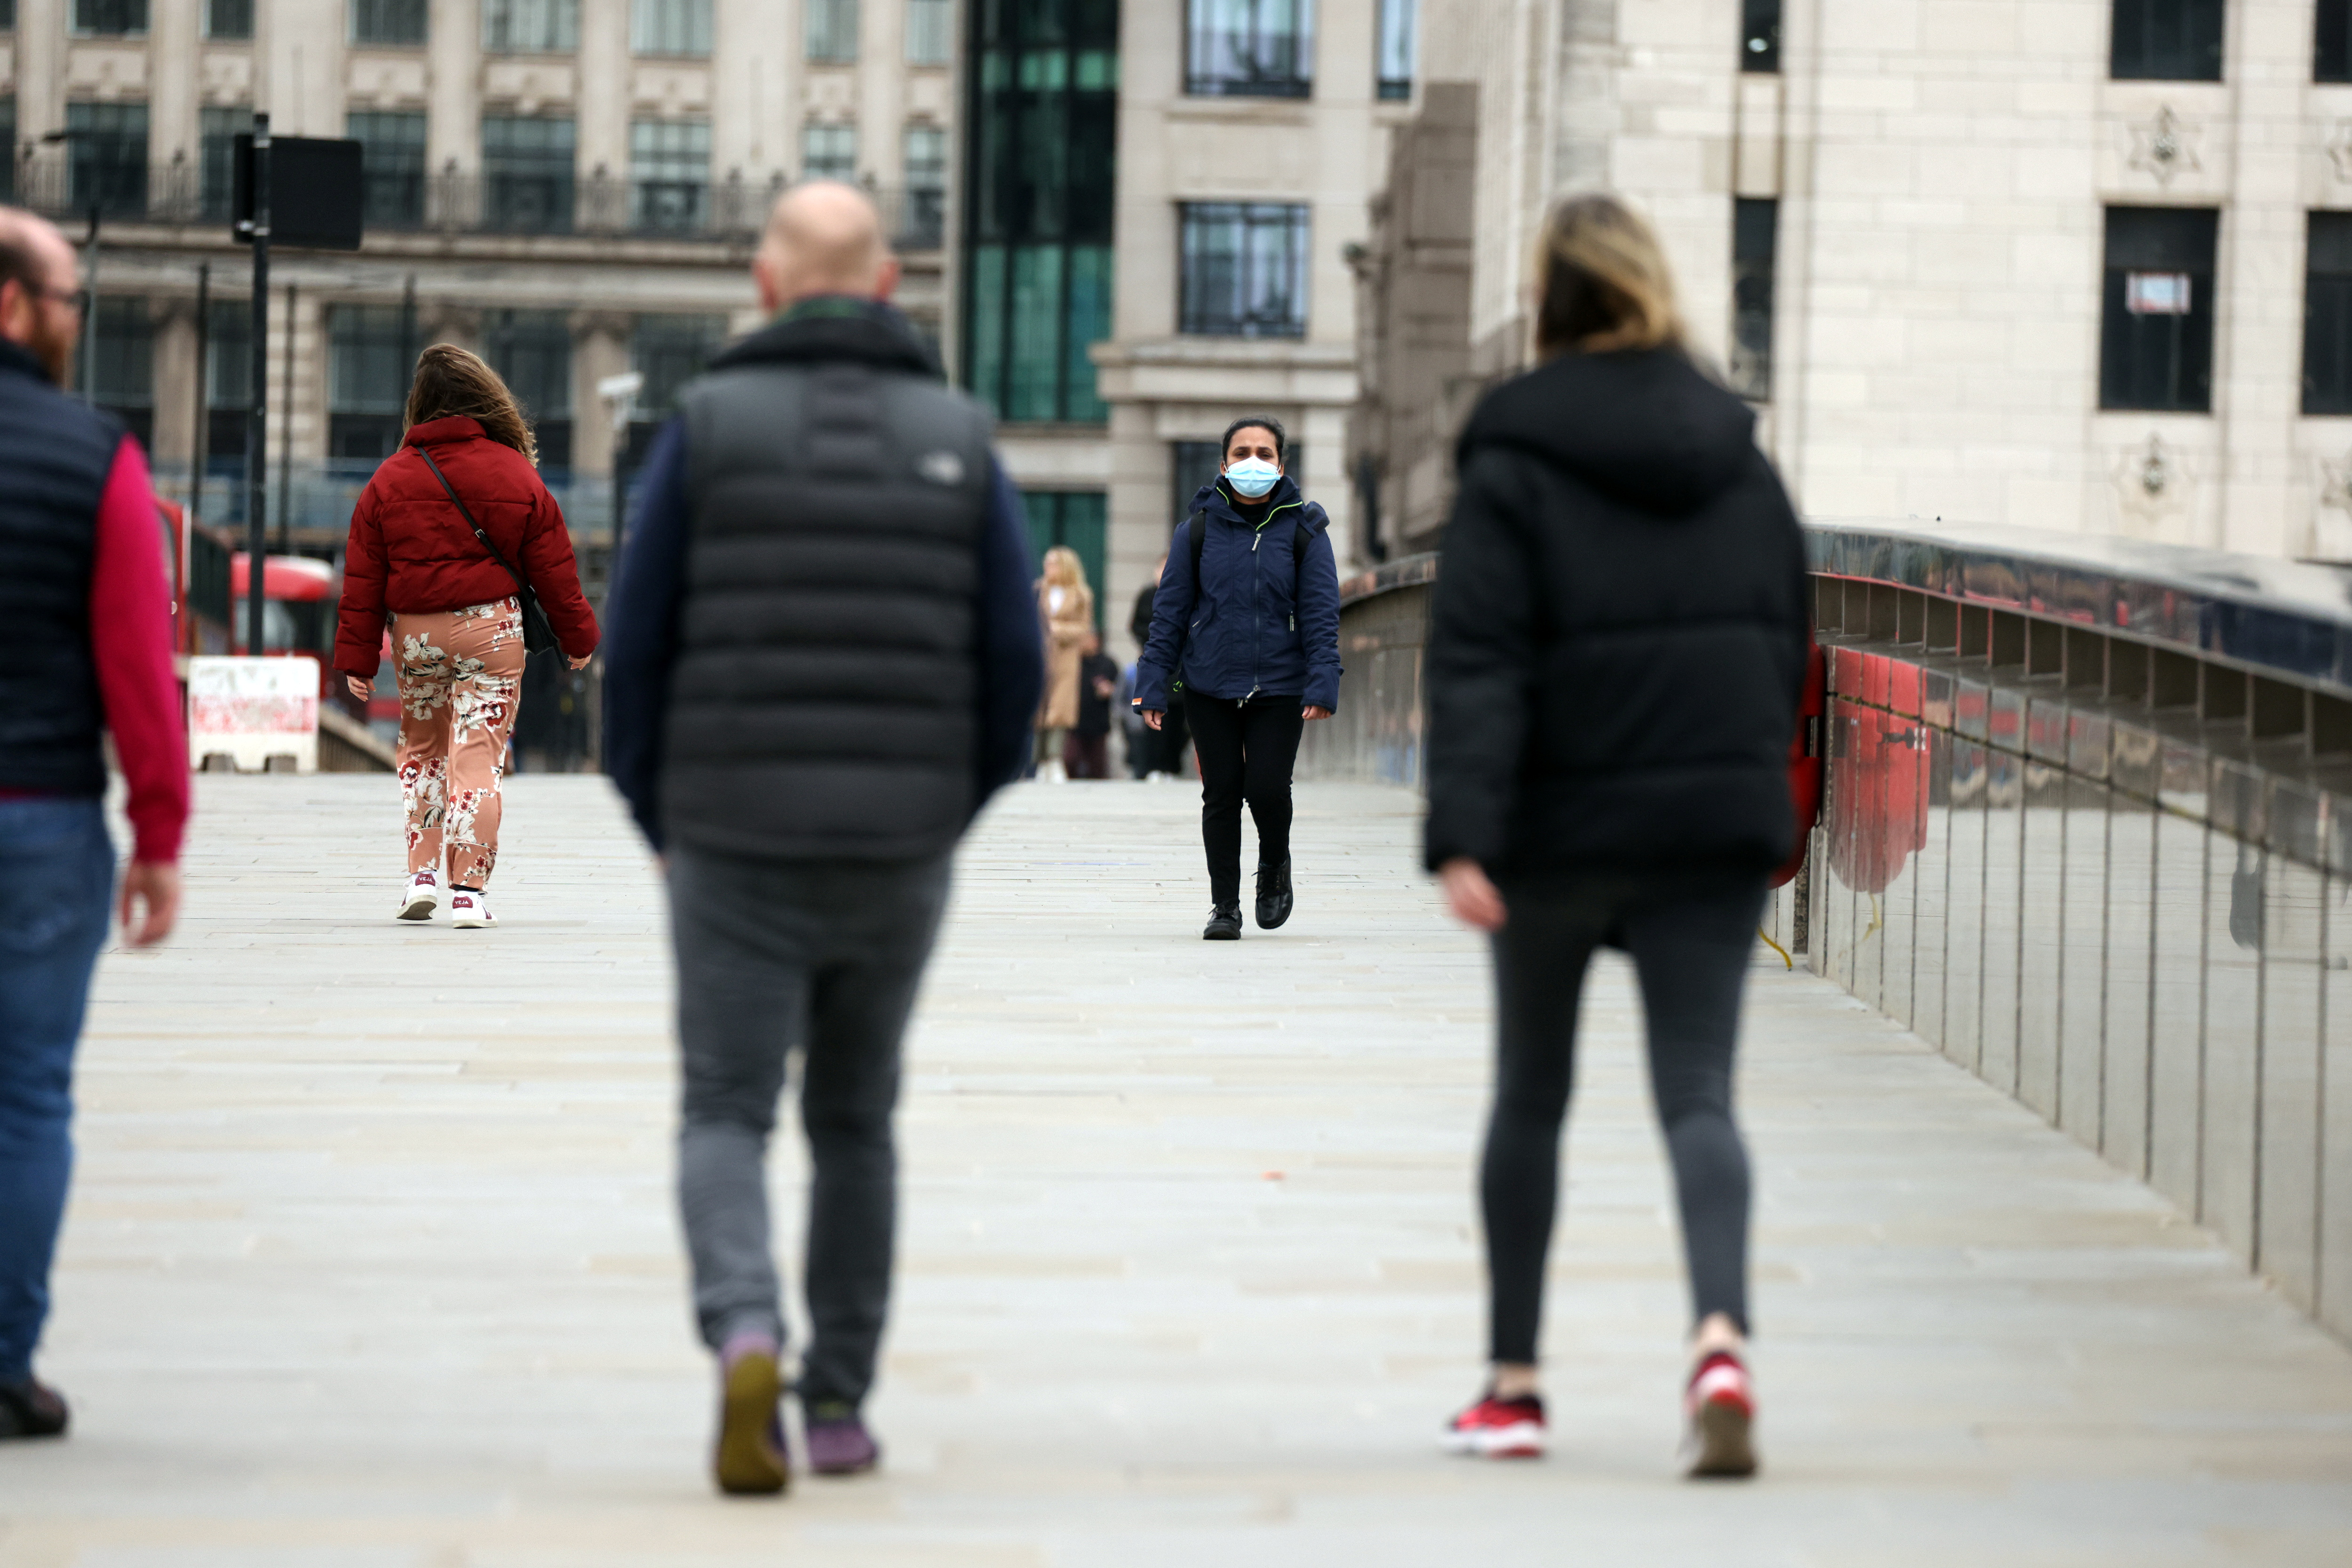 People socially distance while walking across London Bridge as coronavirus disease (COVID-19) lockdown restrictions begin to ease, allowing groups of 6 to meet up outside starting from Monday March 29, in London, Britain, March 28, 2021. REUTERS/Kevin Coombs